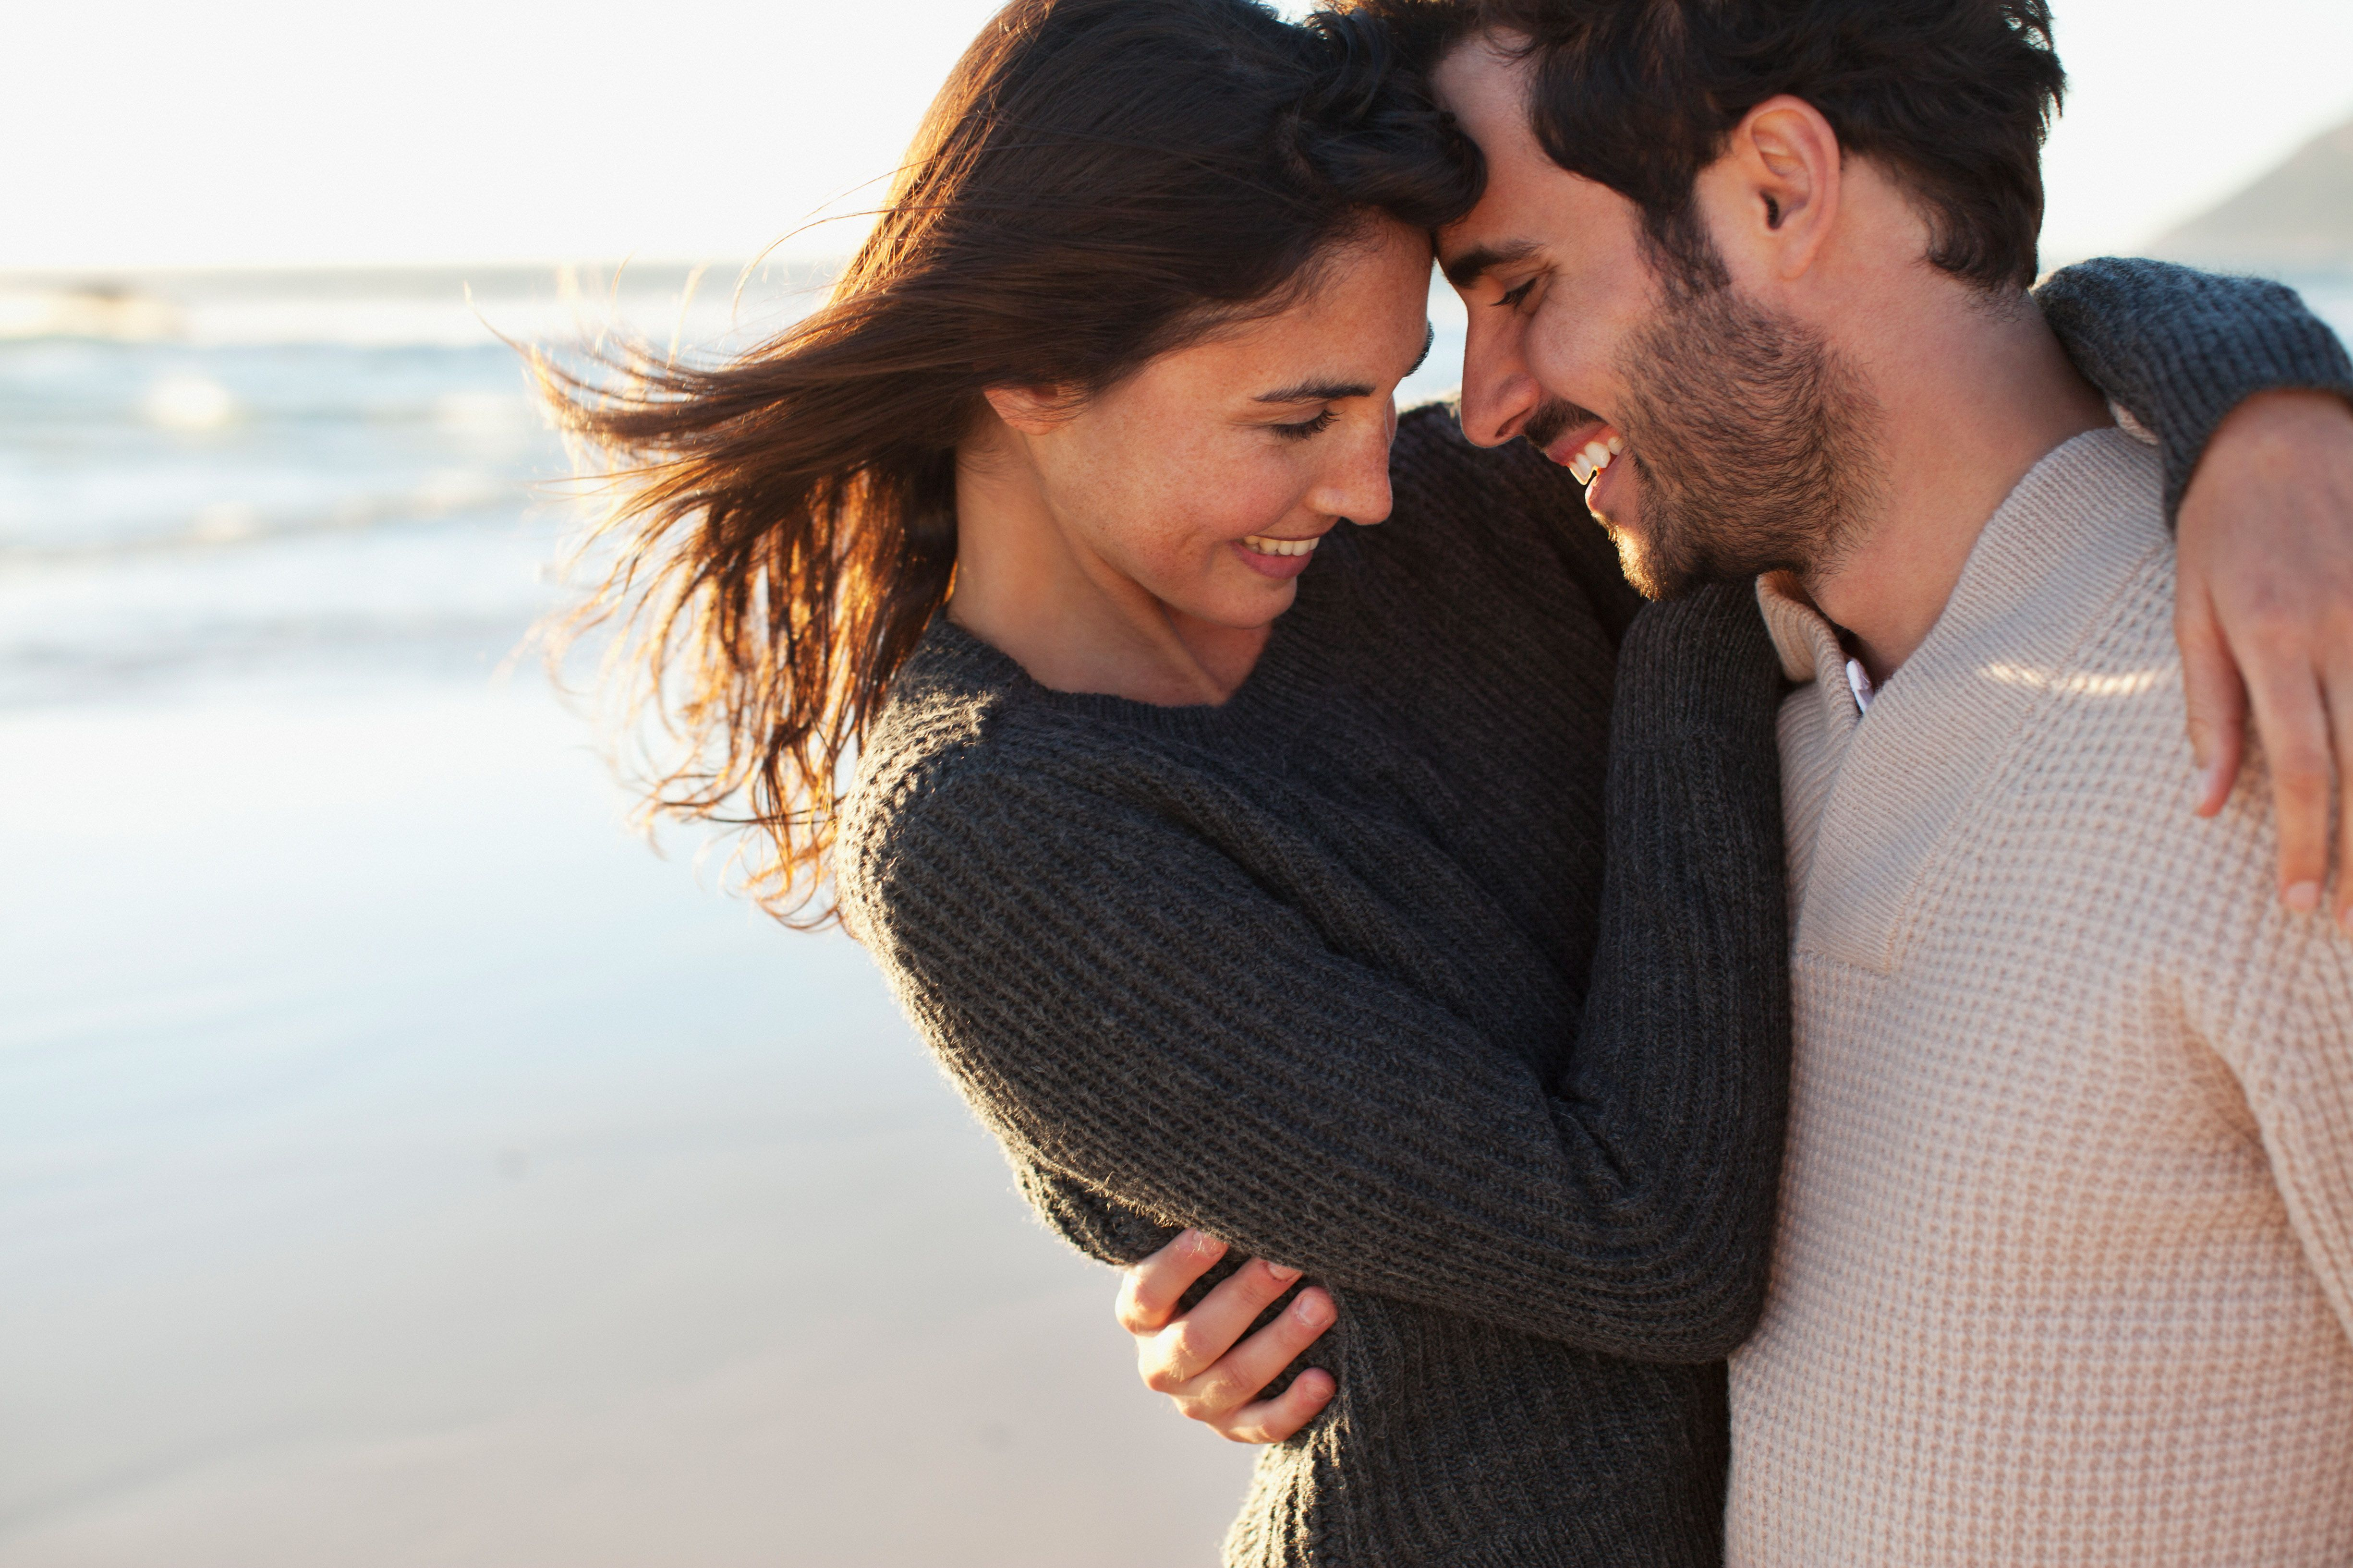 What to expect in the first 2 months of dating